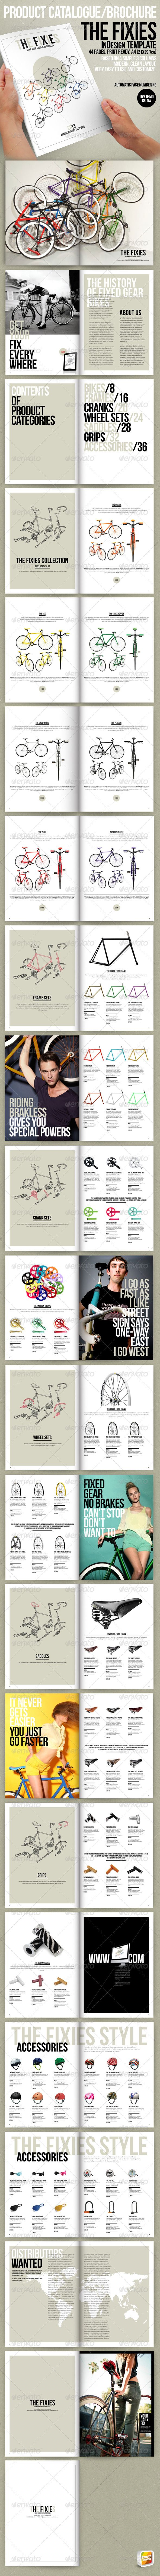 The Fixies-Product Catalogue InDesign template | Diseño editorial ...